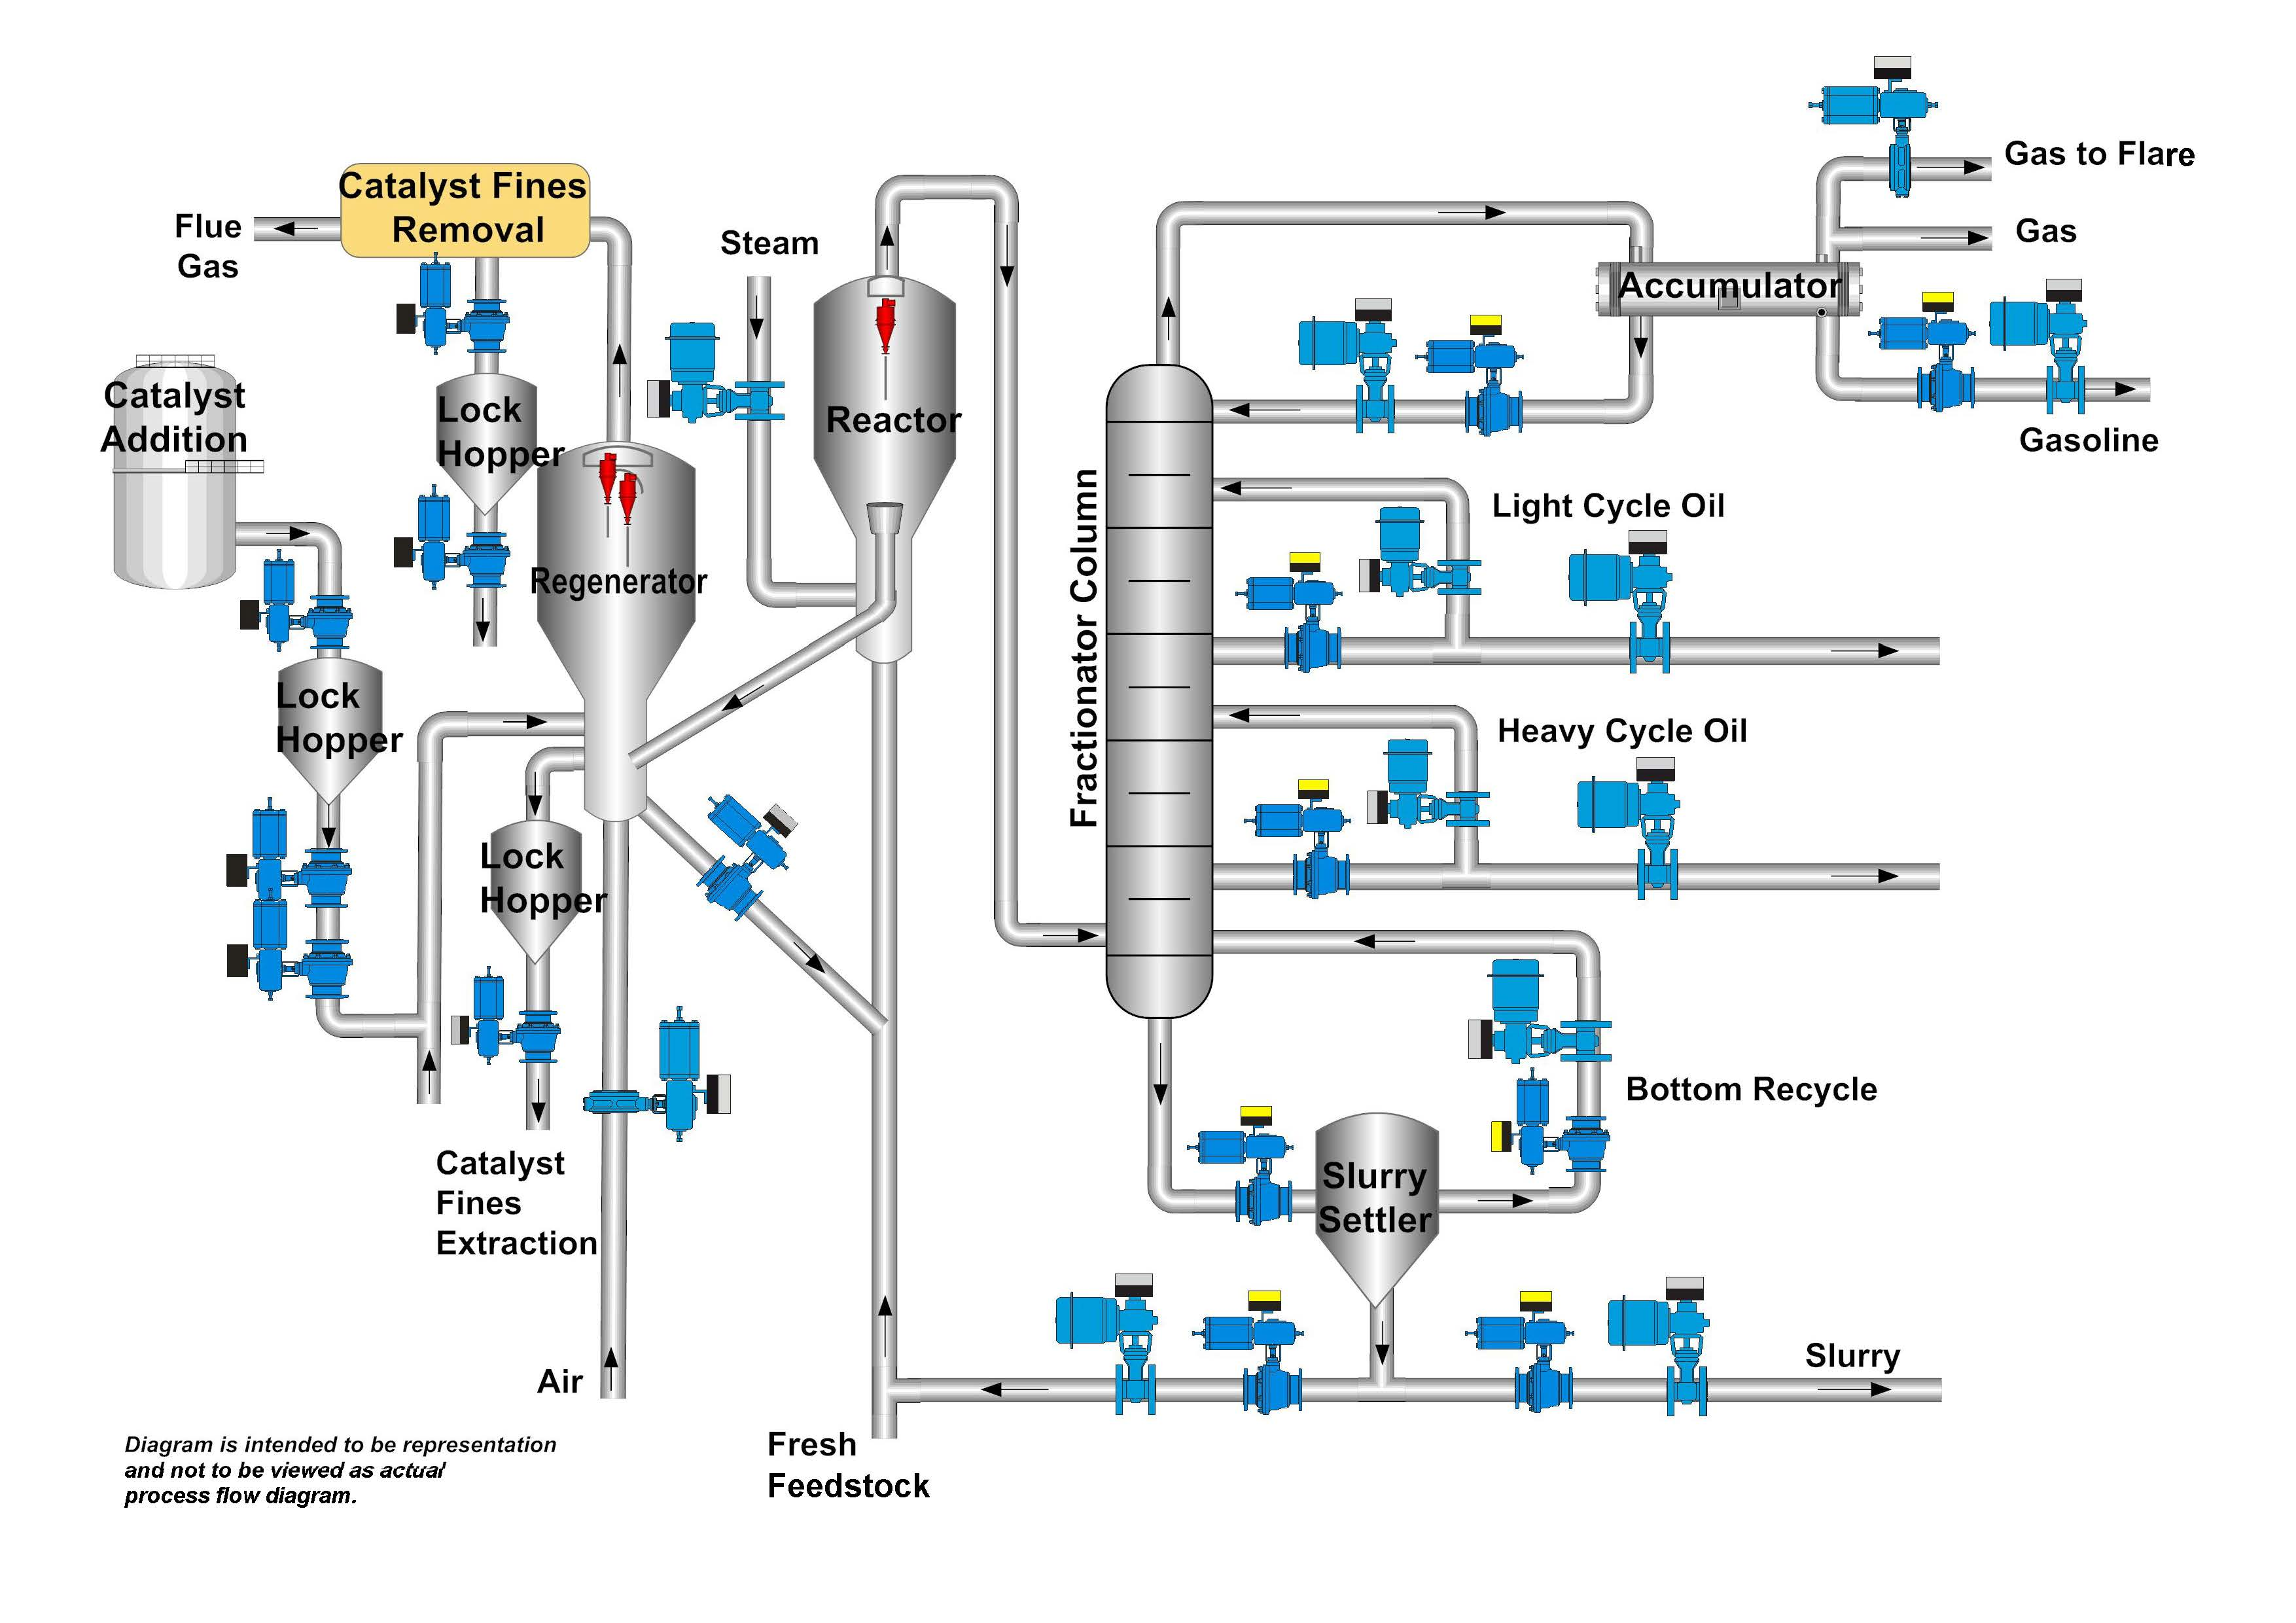 wrg 0721] process flow diagram gtl plantsimplified process flow diagram of the oryx gtl plant [26] download scientific diagram things to consider in valve selection for catalytic cracking